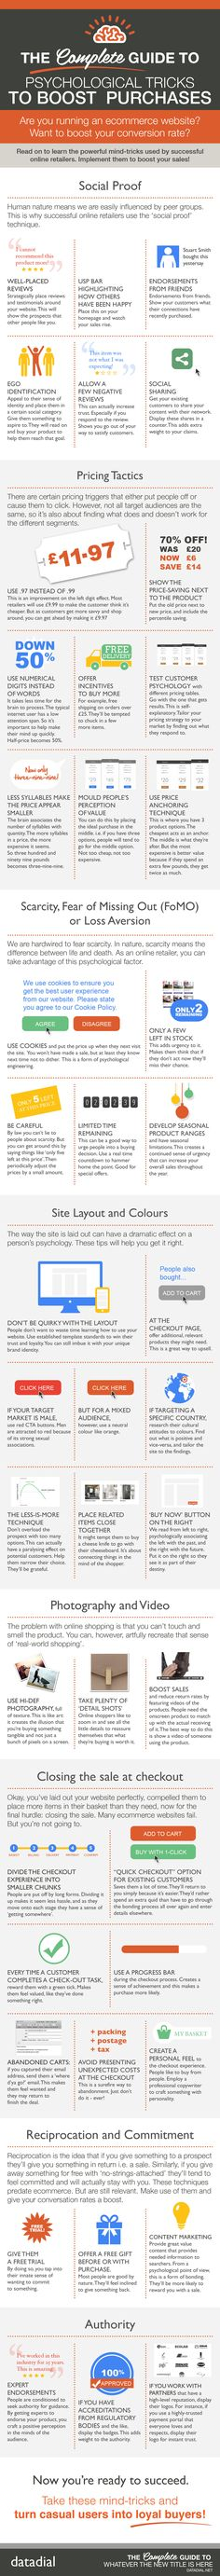 Are you running an ecommerce website? Want to boost your conversion rate? Social Proof Pricing Tactics Scarcity, Fear of Missing Out (FoMO) or Loss Aversion Site Layout and Colours Photography and…